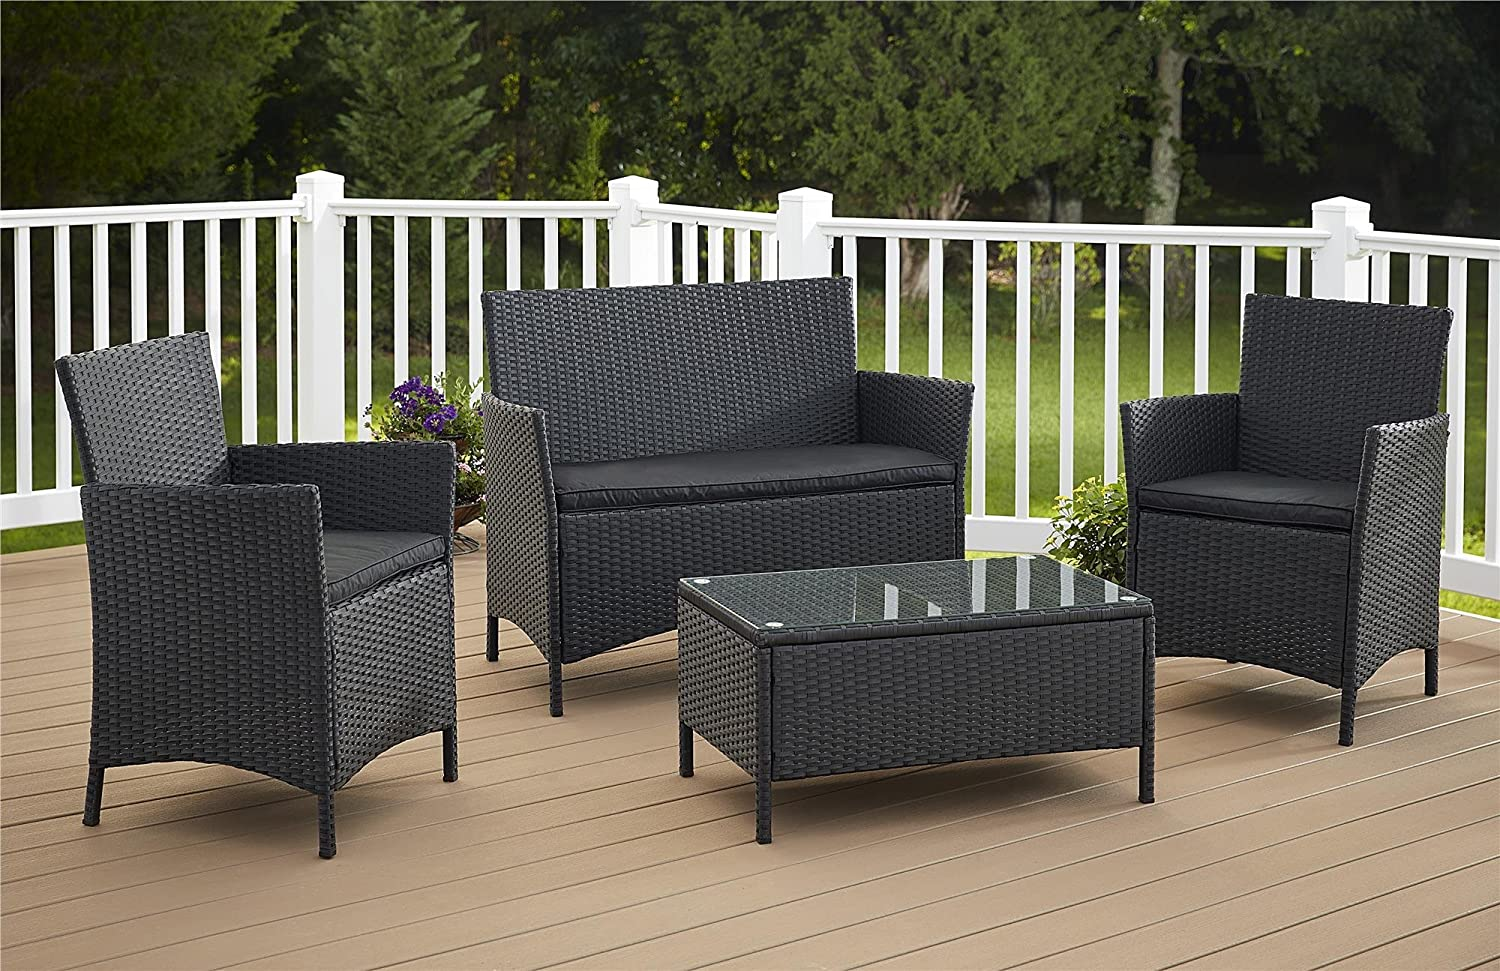 amazoncom cosco products 4 piece jamaica resin wicker set patio lawn u0026 garden - Cheap Patio Sets